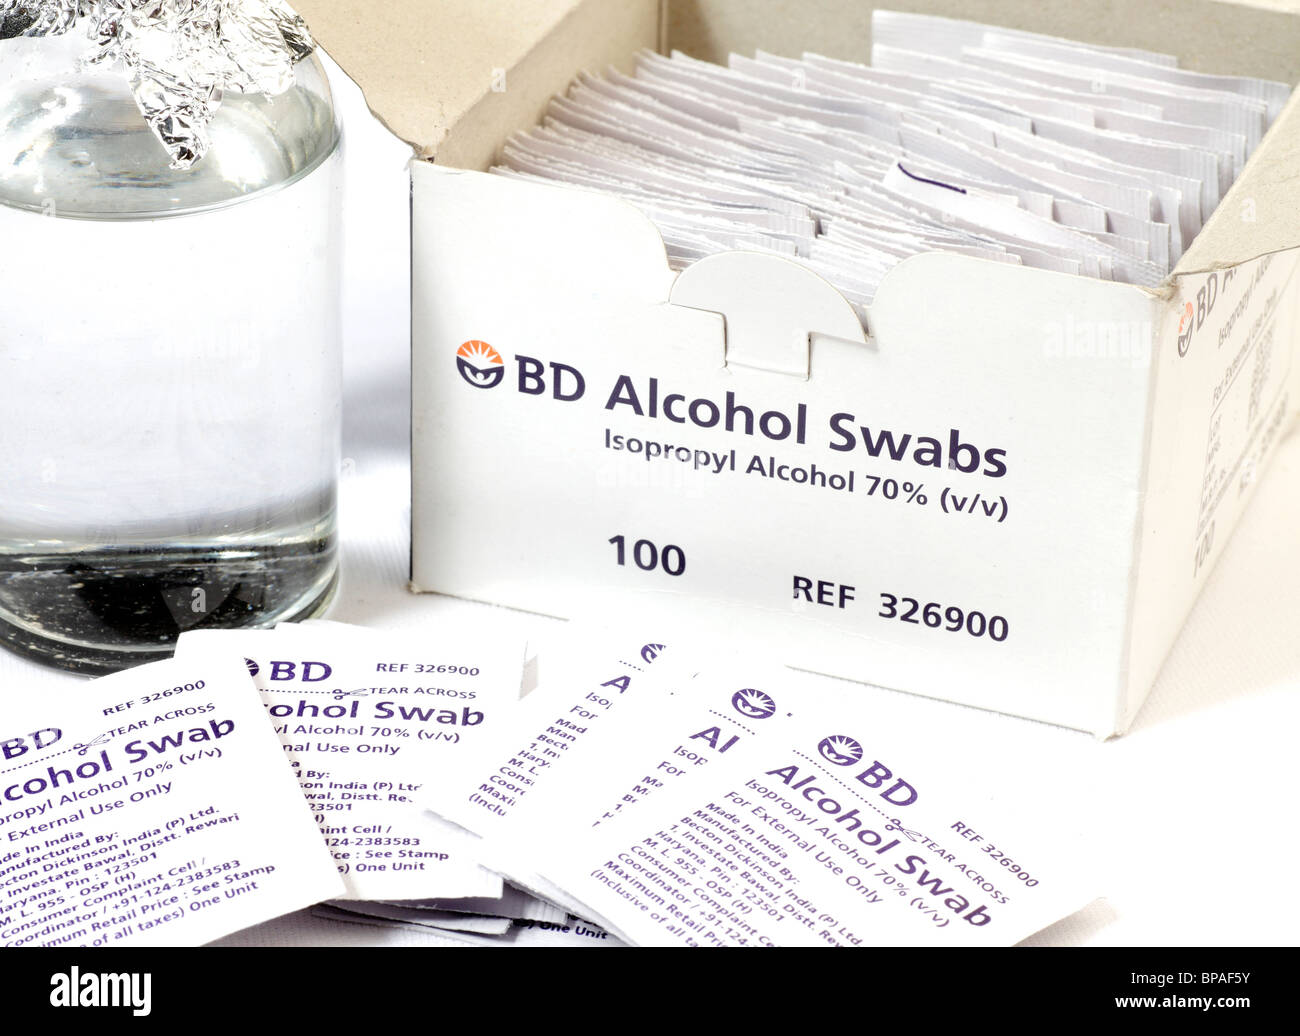 Iso-propyl alcohol swabs swab bottle disinfectant chemical clinic laboratory lab - Stock Image